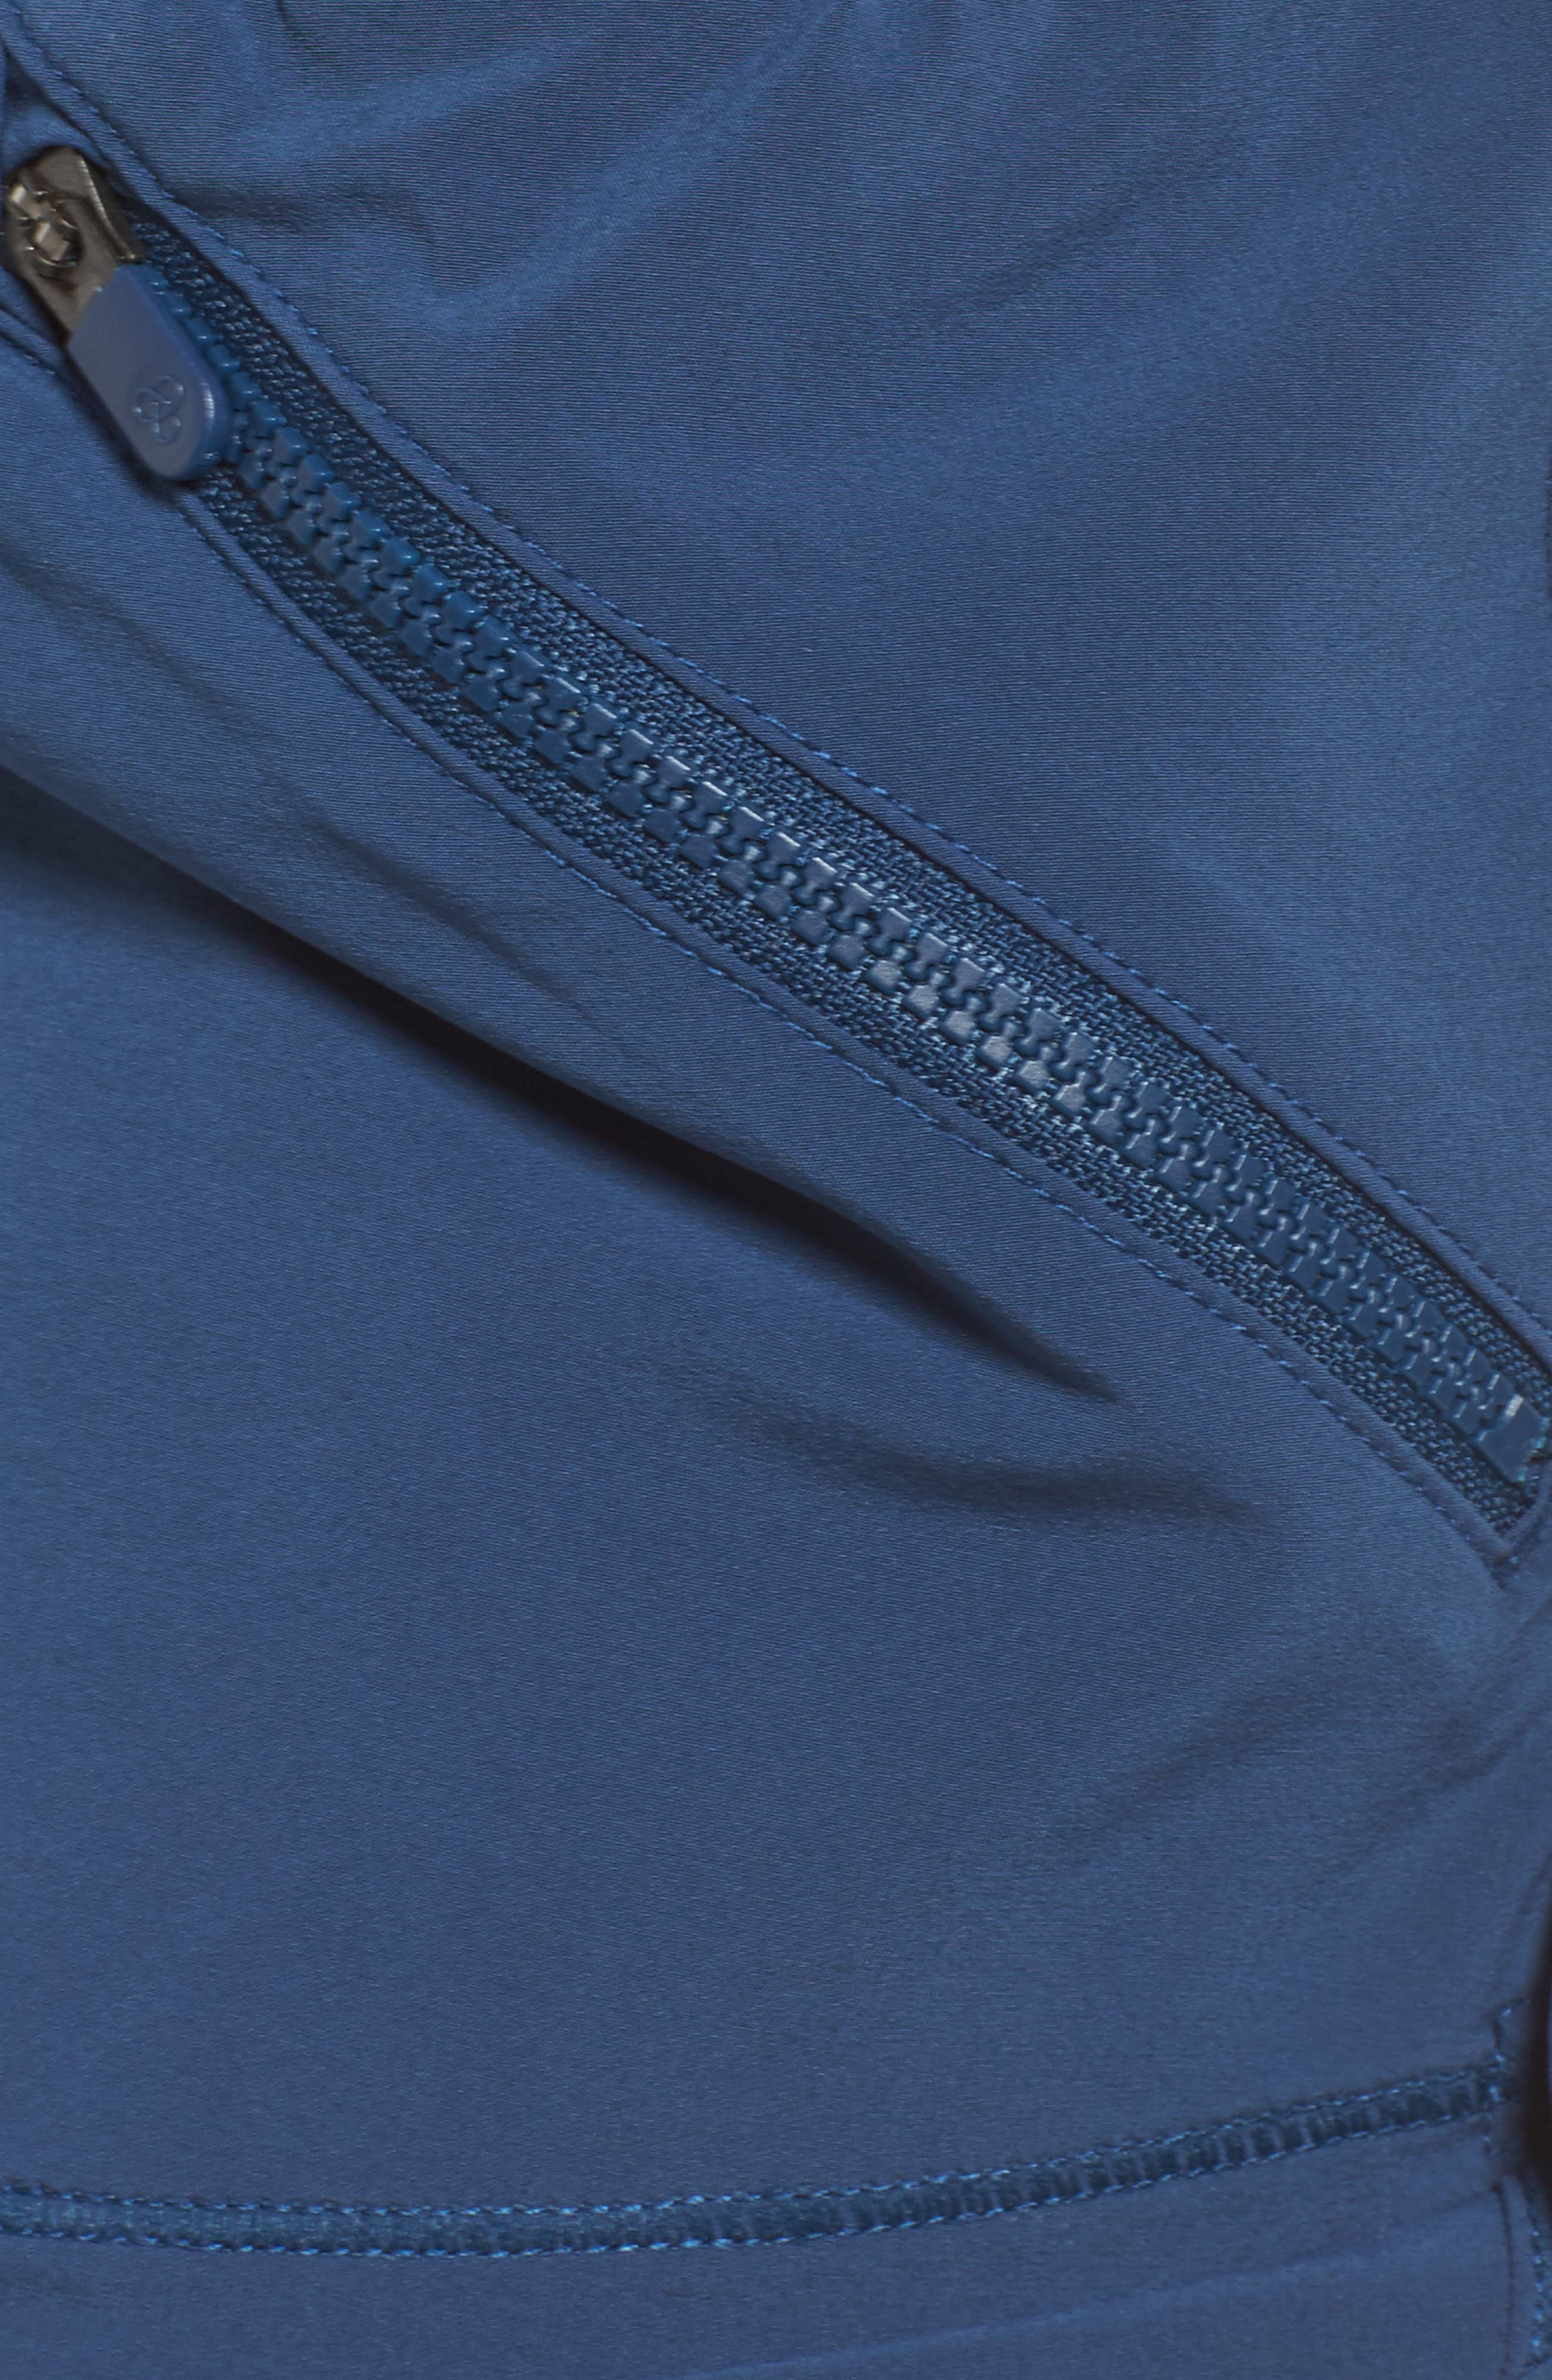 Switchback Shorts,                             Alternate thumbnail 6, color,                             Blue Insignia